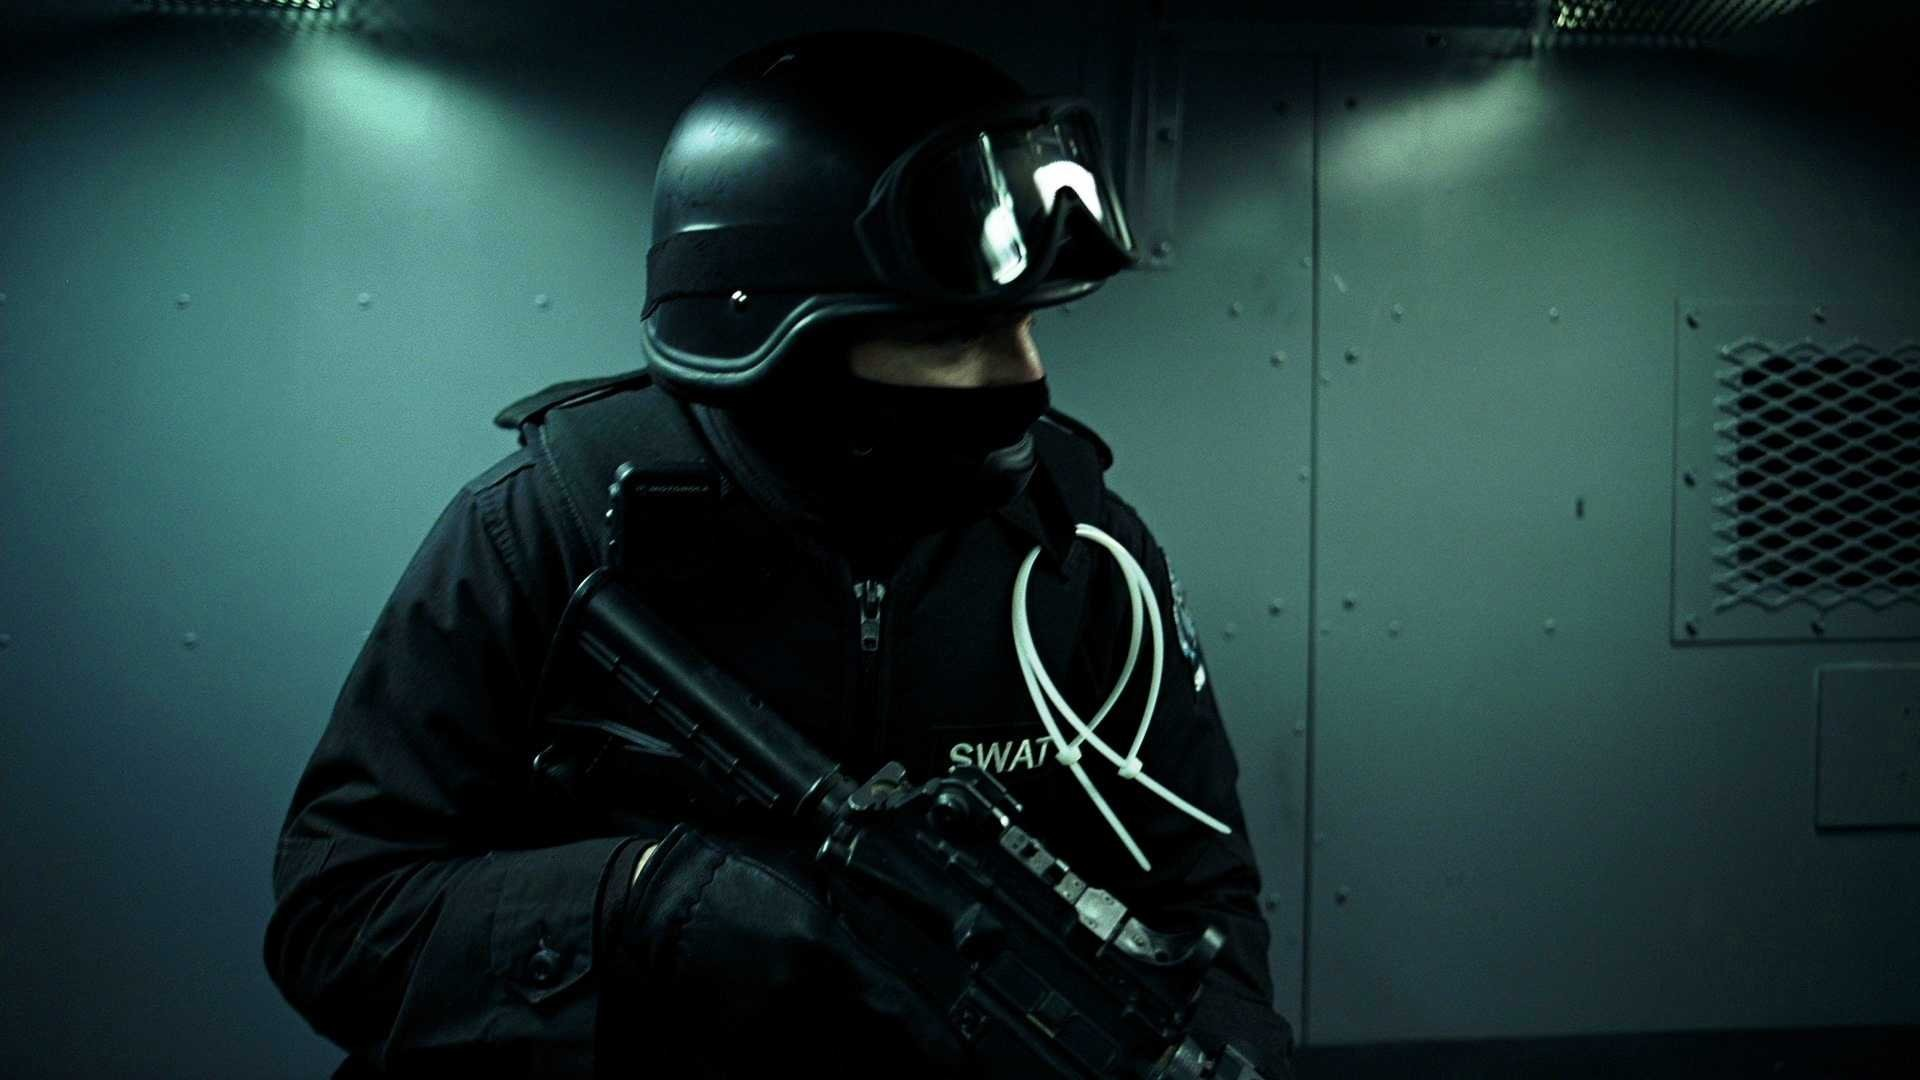 Swat Wallpaper 65 Pictures